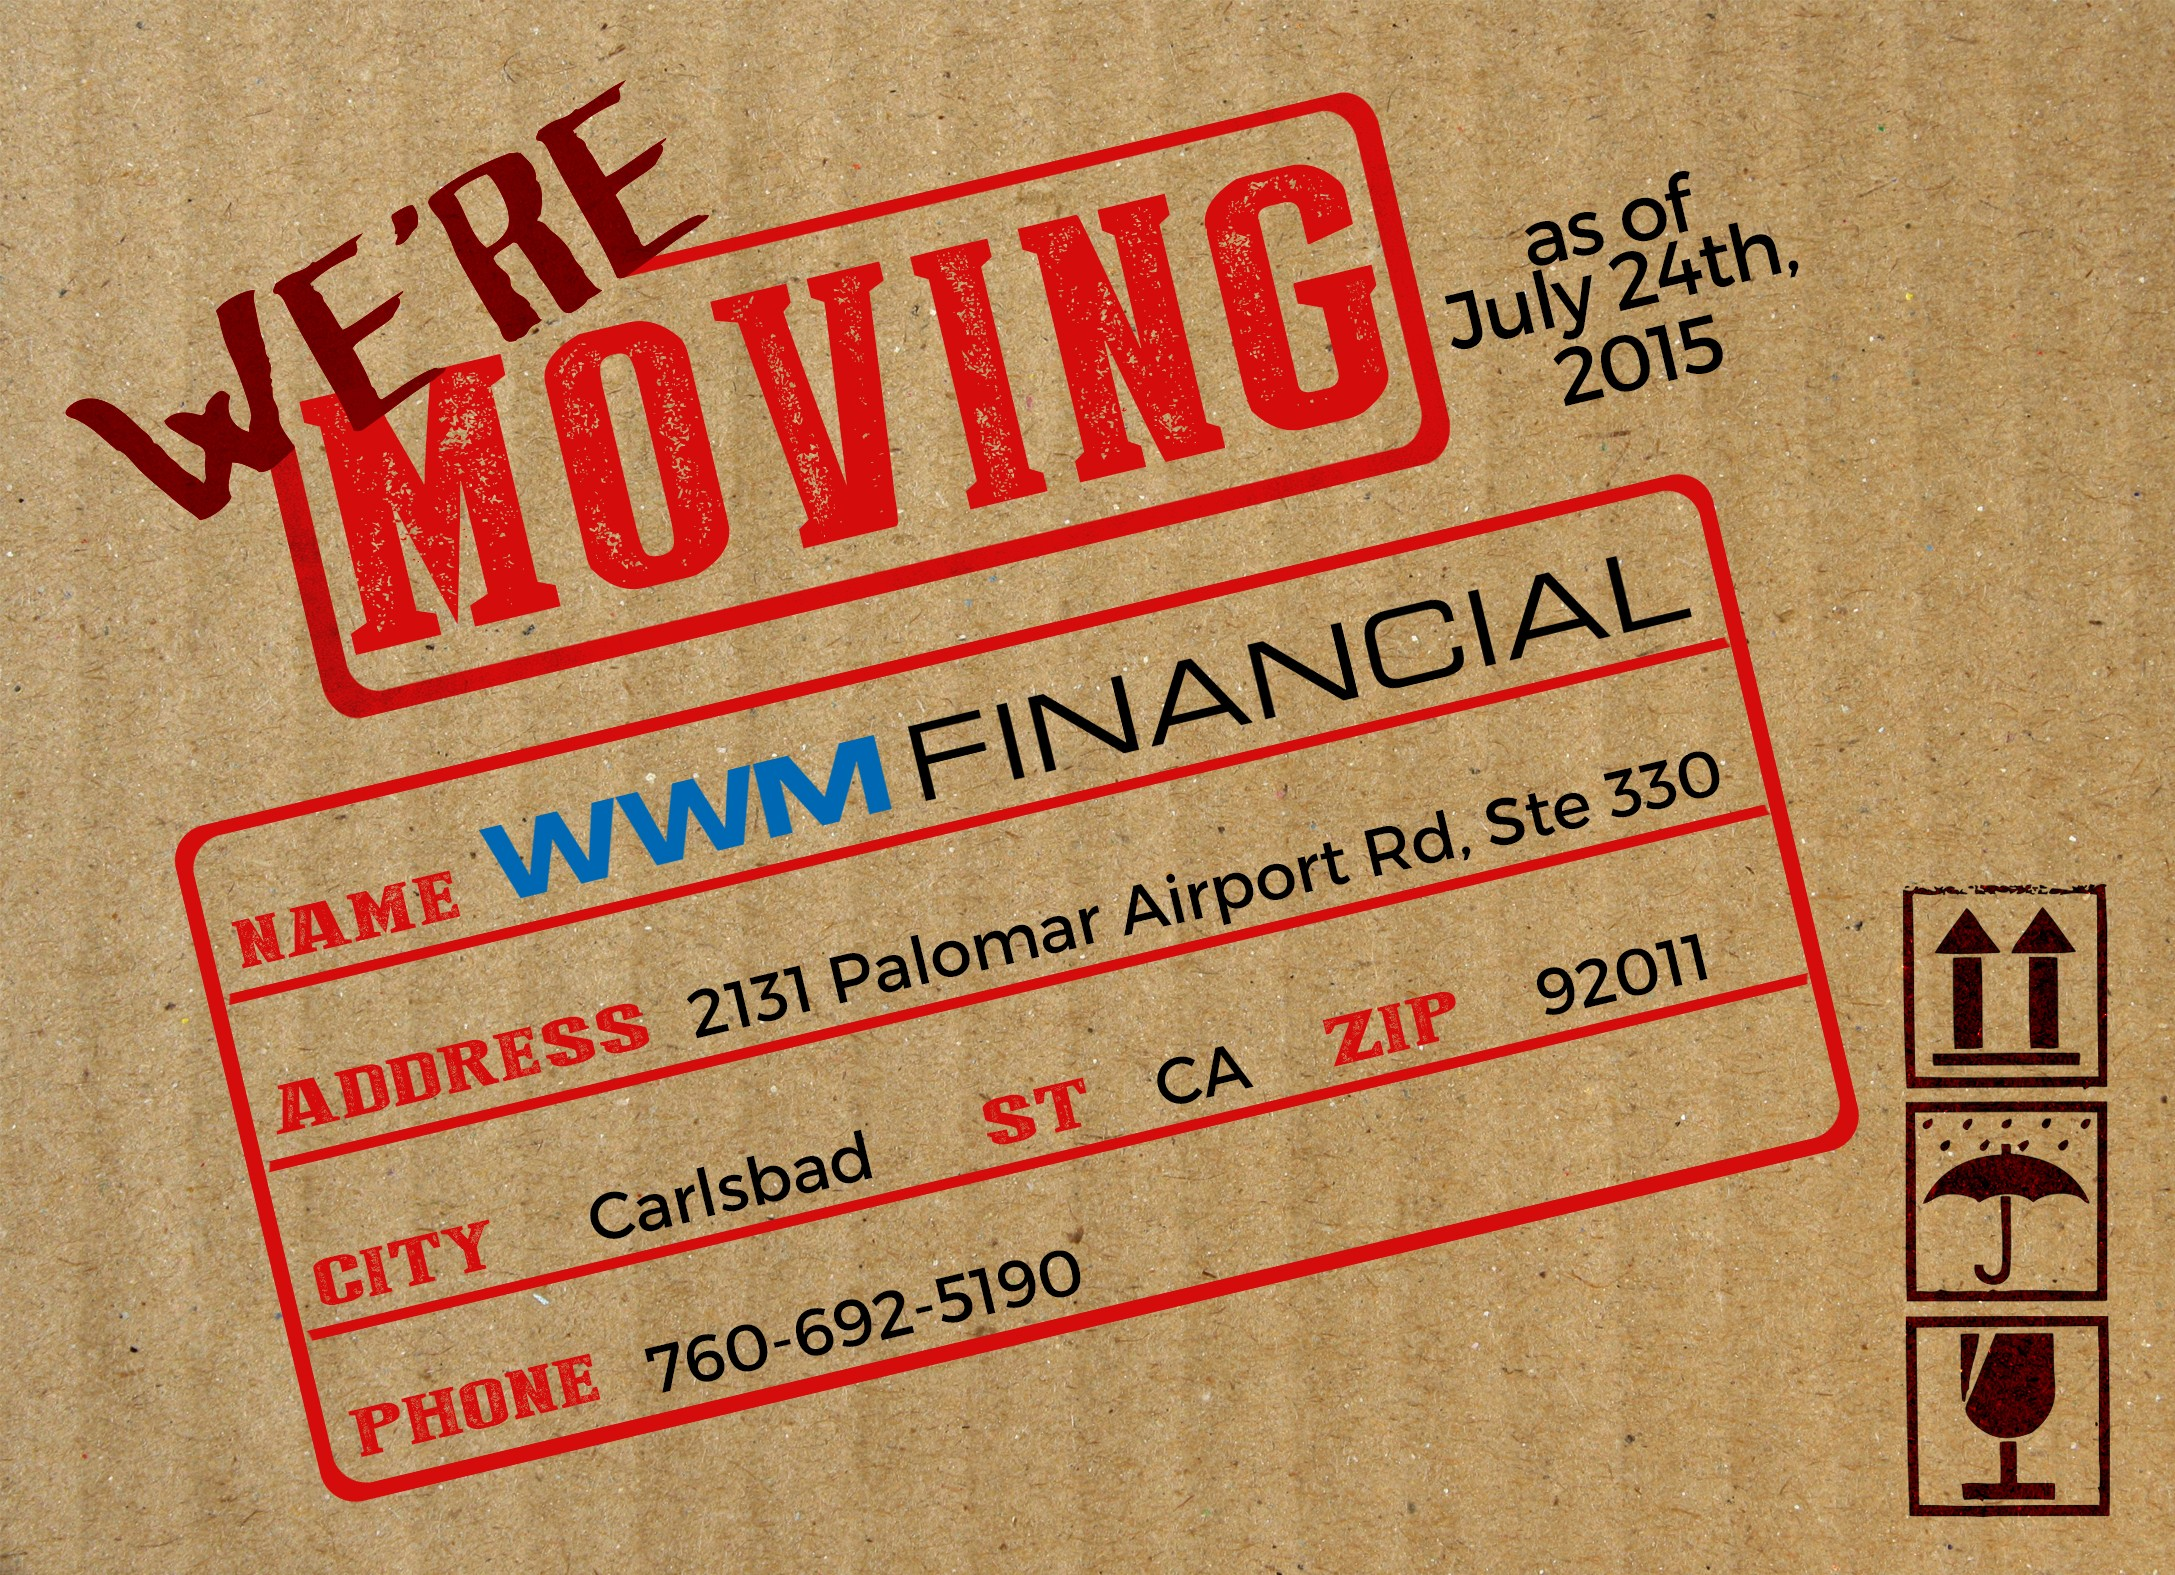 Moving Card - Front July 24th (3)